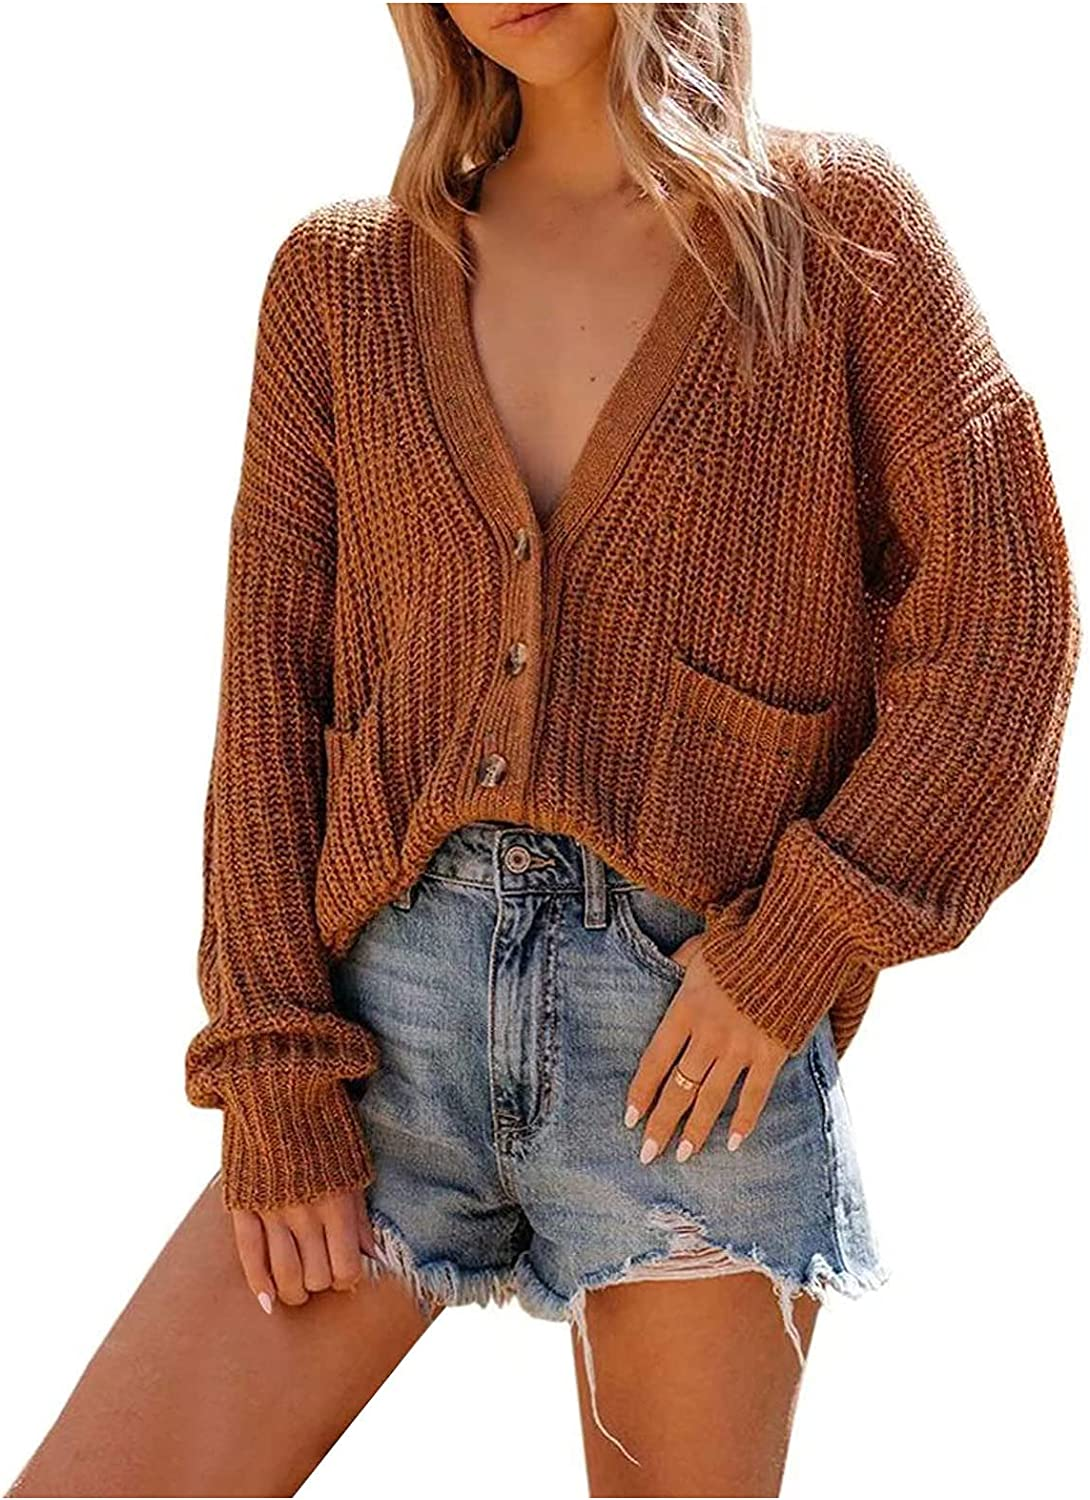 wodceeke Sweaters Max 40% OFF for Women New Shipping Free Womens V Cro Button Cable Neck Knit